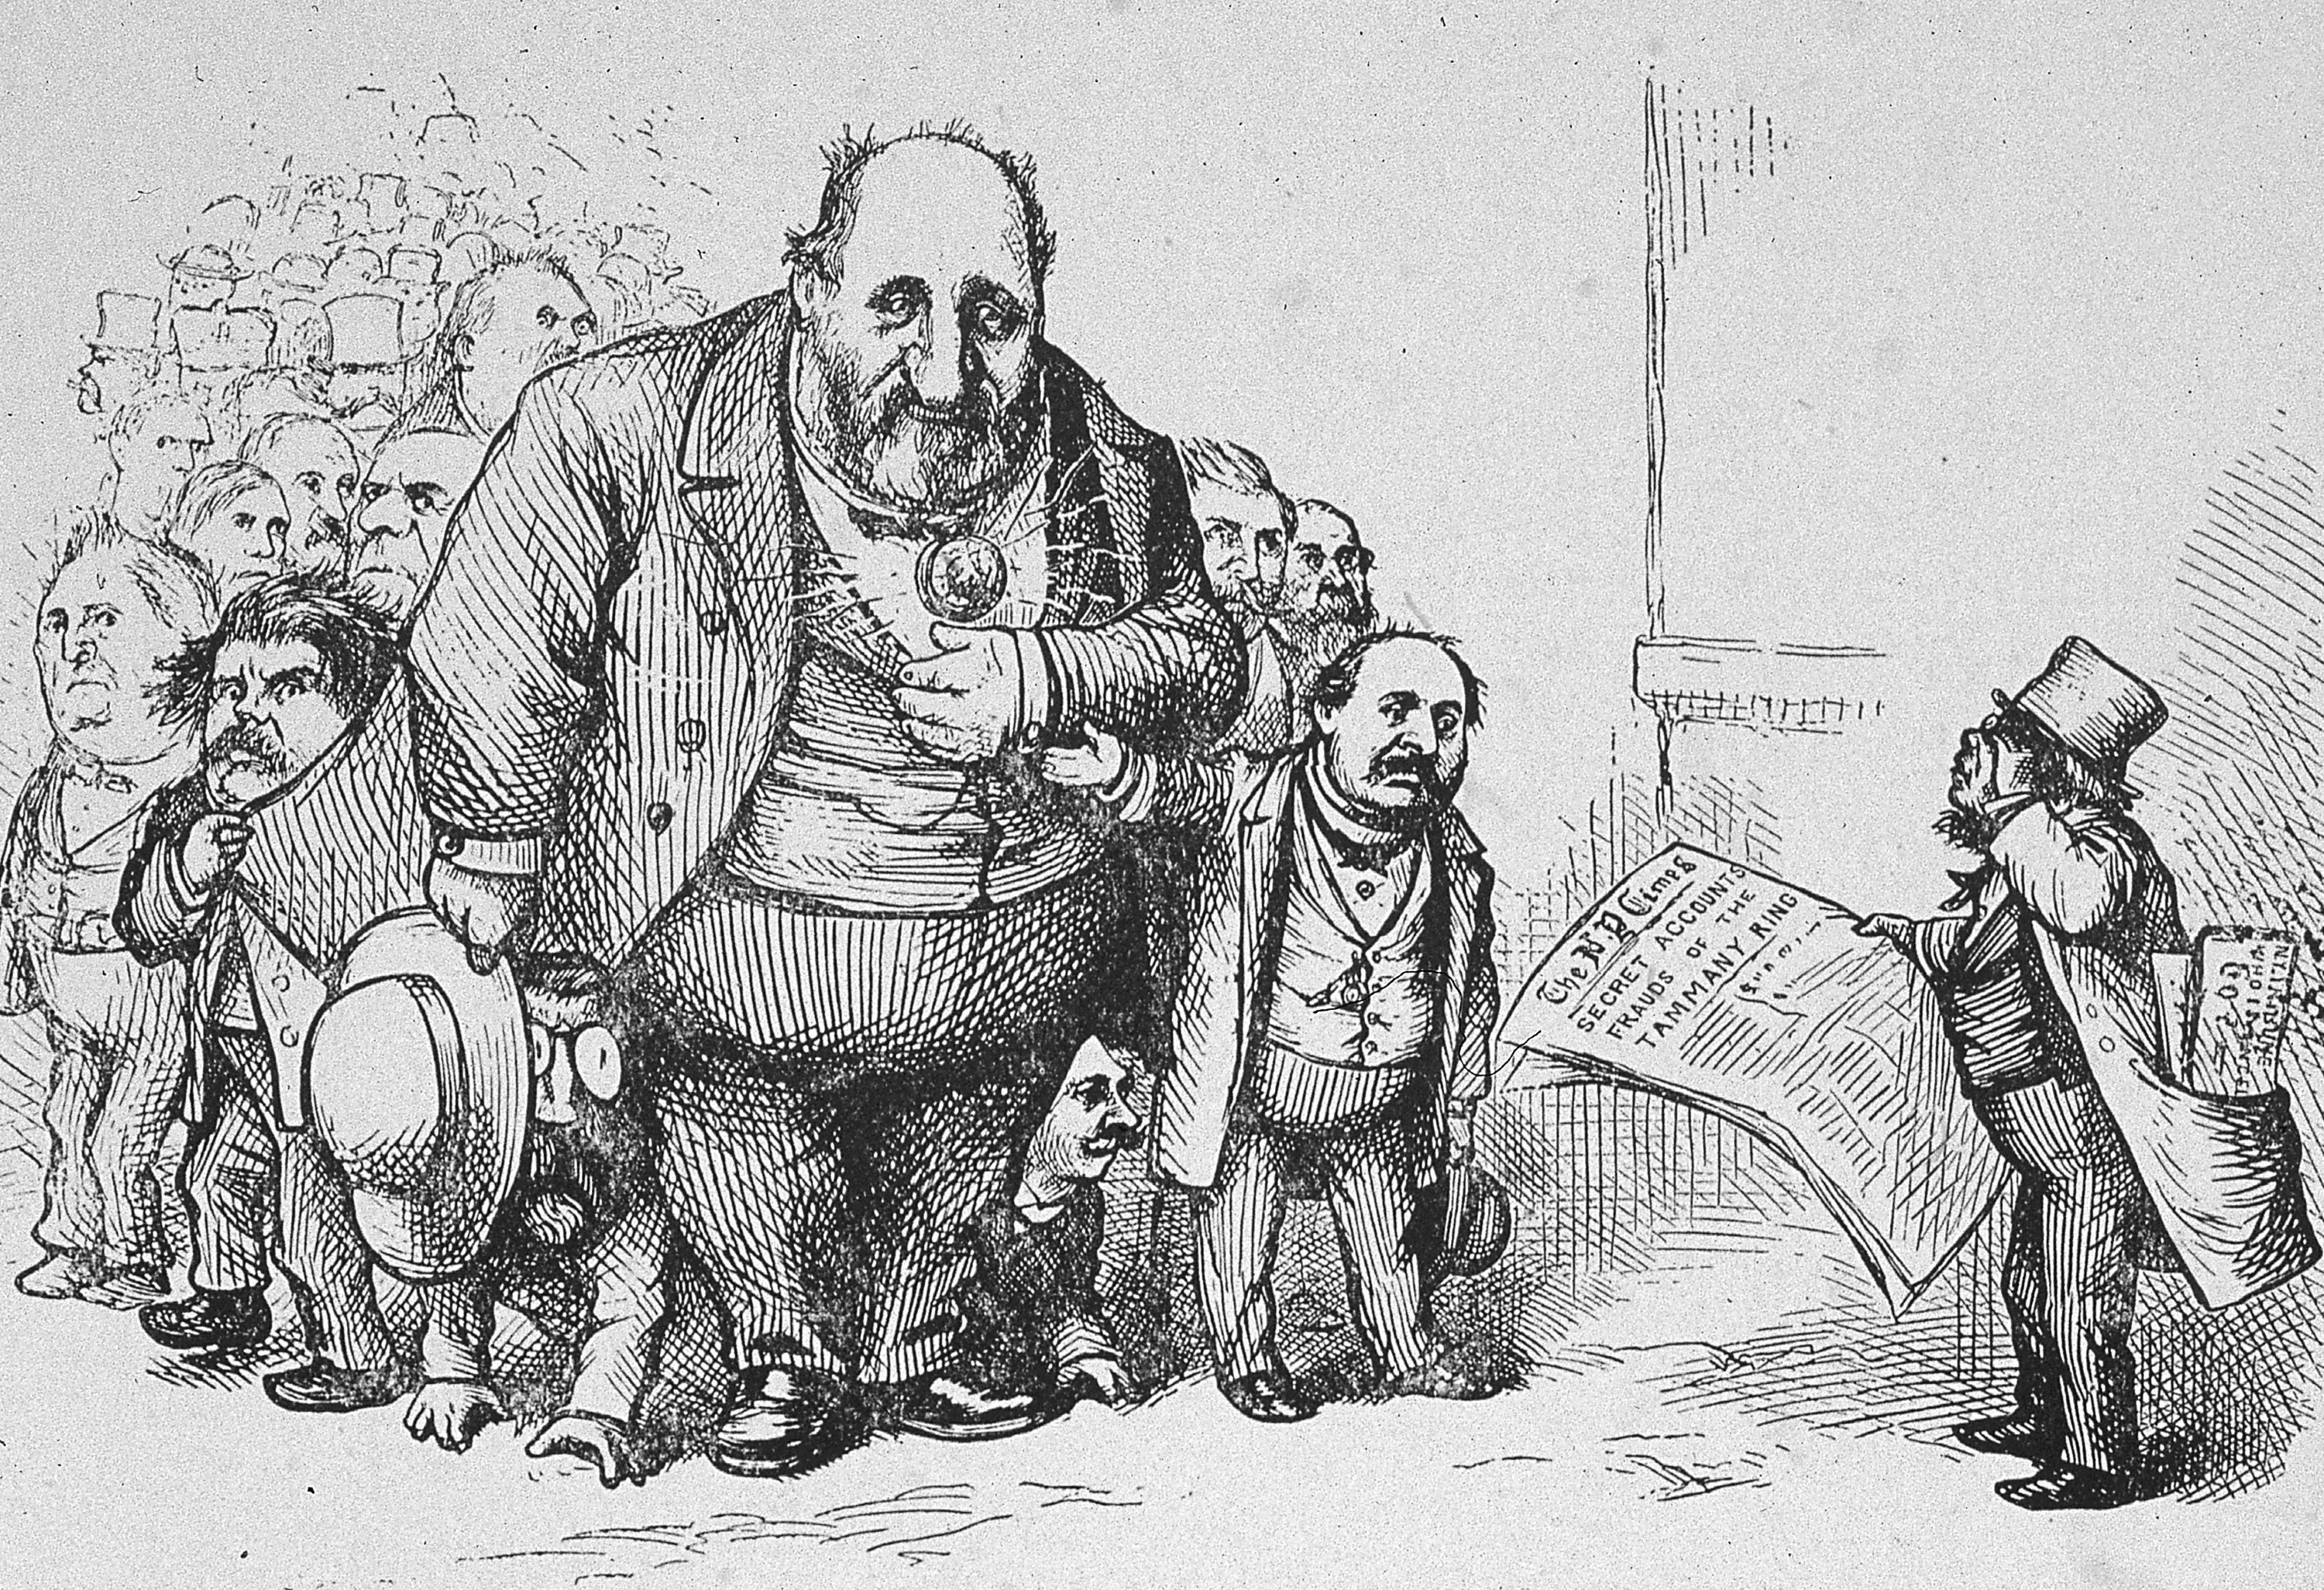 Thomas Nast's cartoon showing New York Times reader confronting Boss Tweed.